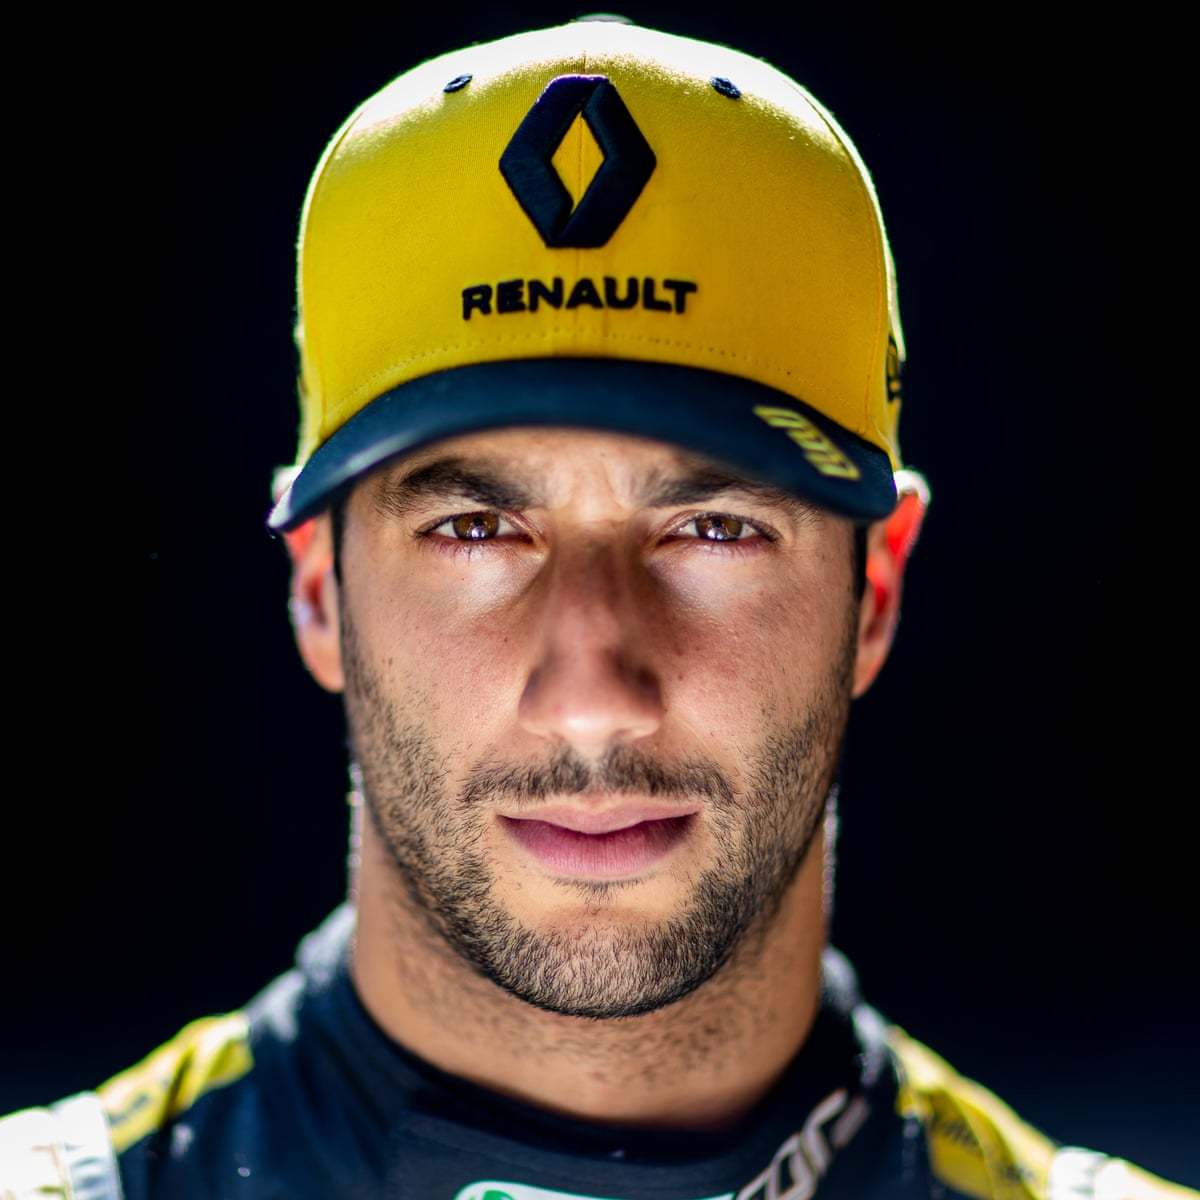 This is an image of Daniel Riccardo, he is an F1 driver. He is looking directly into the camera with a serious facial expression. He is also wearing a black and yellow baseball cap, which has RENAULT written on it and the company's logo above.